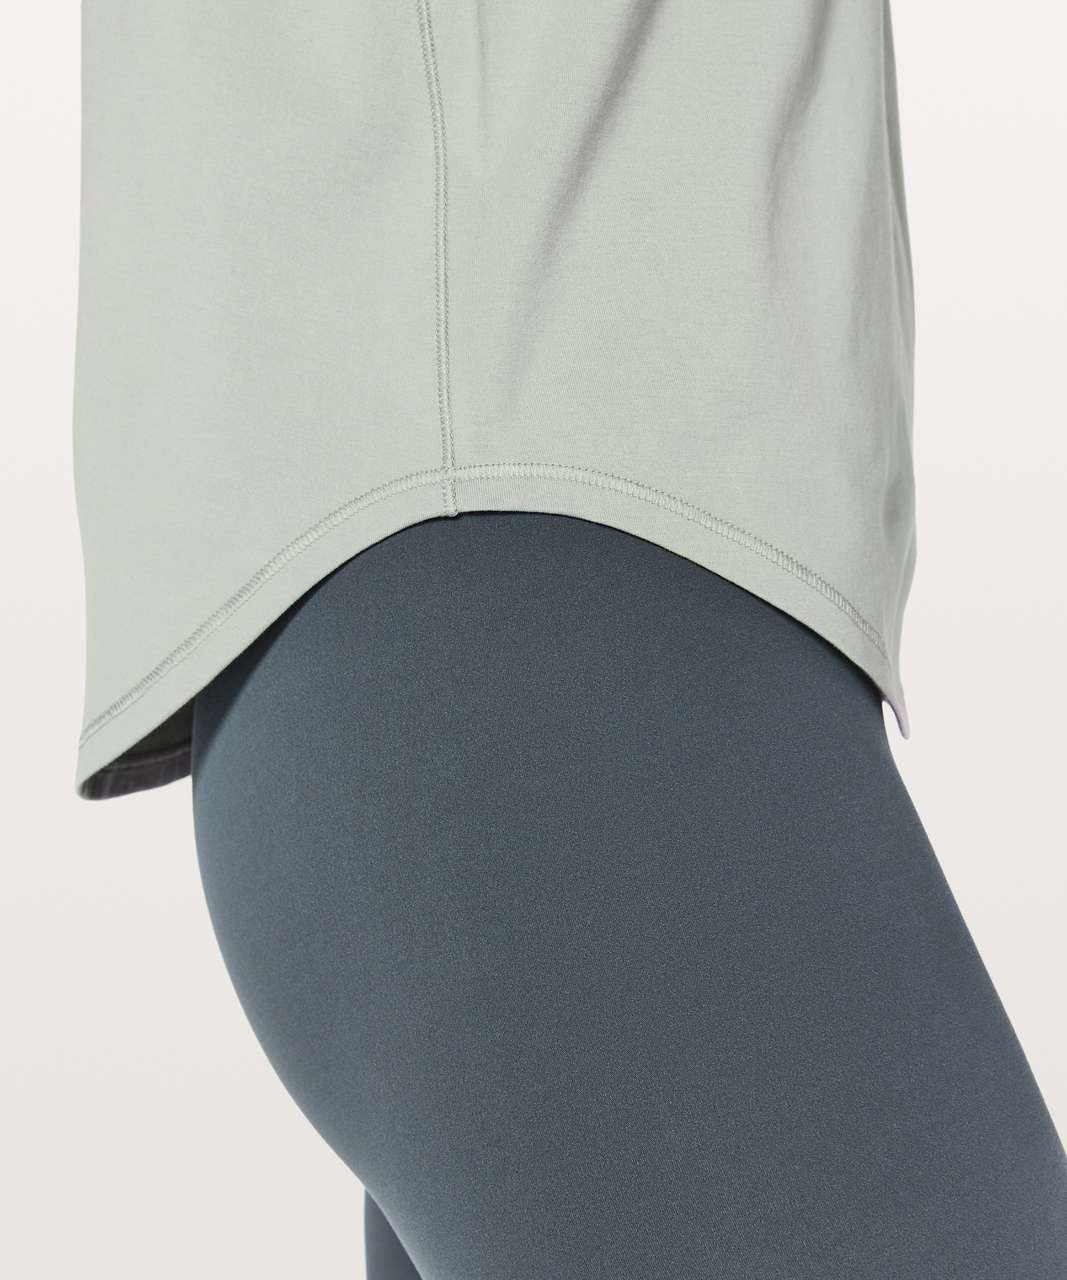 Lululemon Sweat Date Singlet - Misty Moss